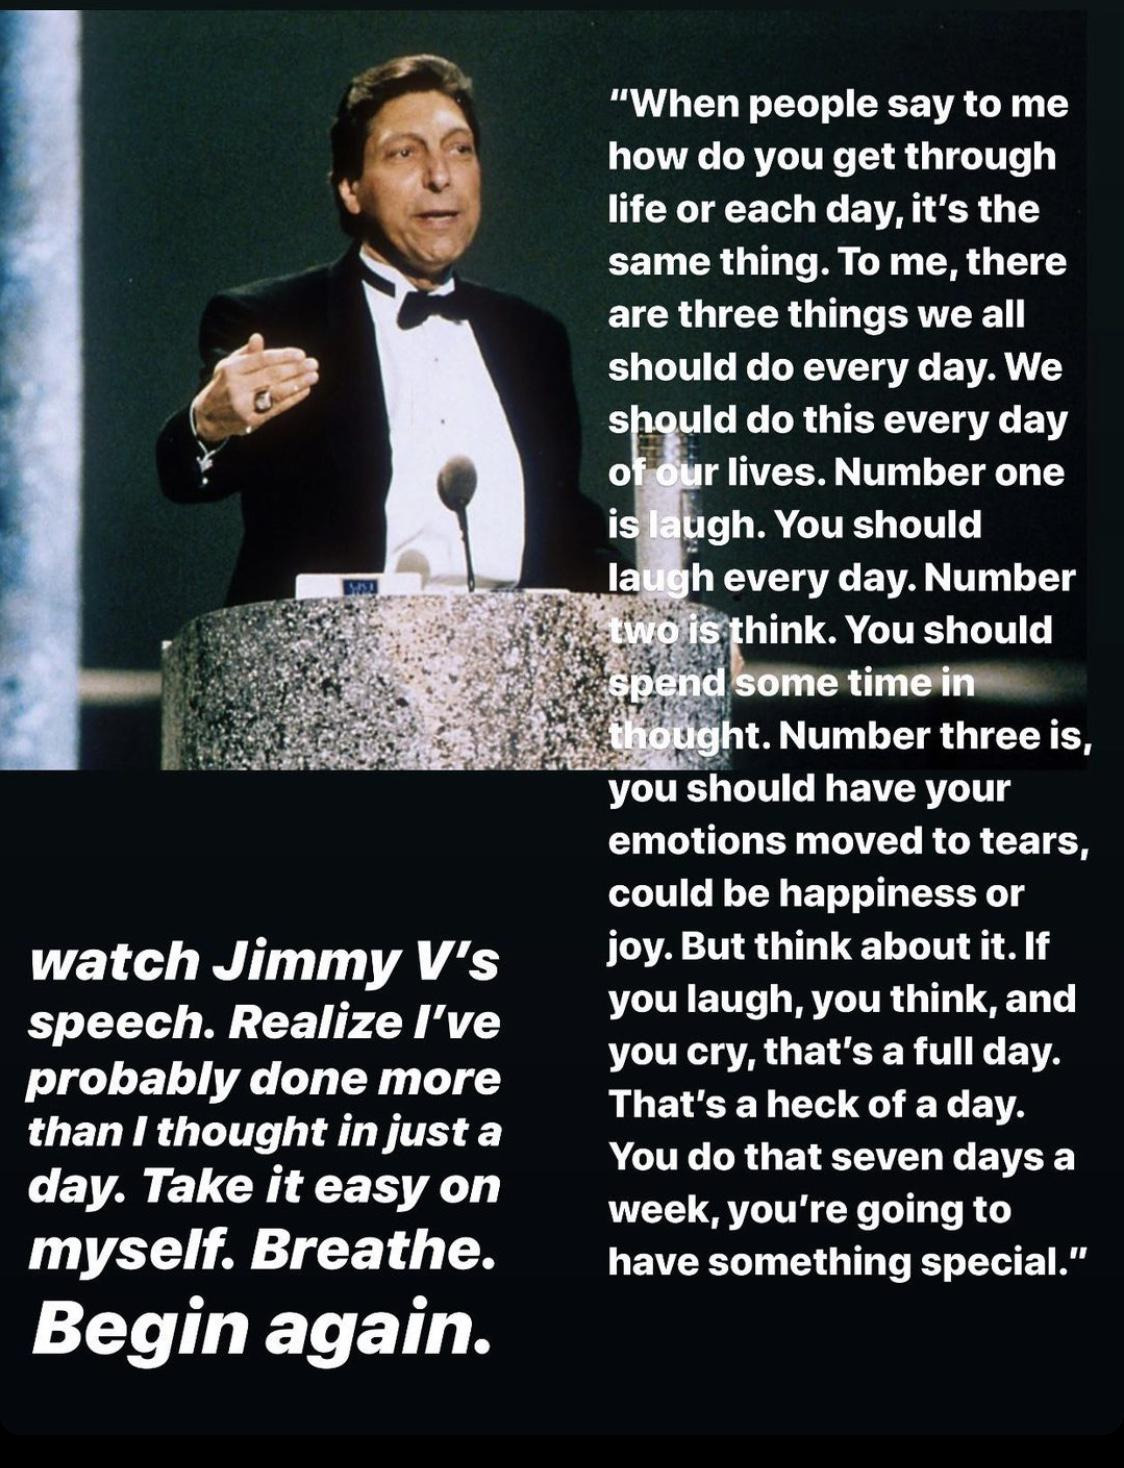 "watch Jimmy V's speech. Realize I've probably done more than I thought in just a day. Take it easy on myself. Breathe. Begin again. ""When people say to me how do you get through life or each day, it's the same thing. To me, there are three things we all should do every day. We .. you should have your emotions moved to tears, could be happiness or joy. But think about it. If you laugh, you think, and you cry, that's a full day. That's a heck of a day. You do that seven days a week, you're going to have something special."" https://inspirational.ly"